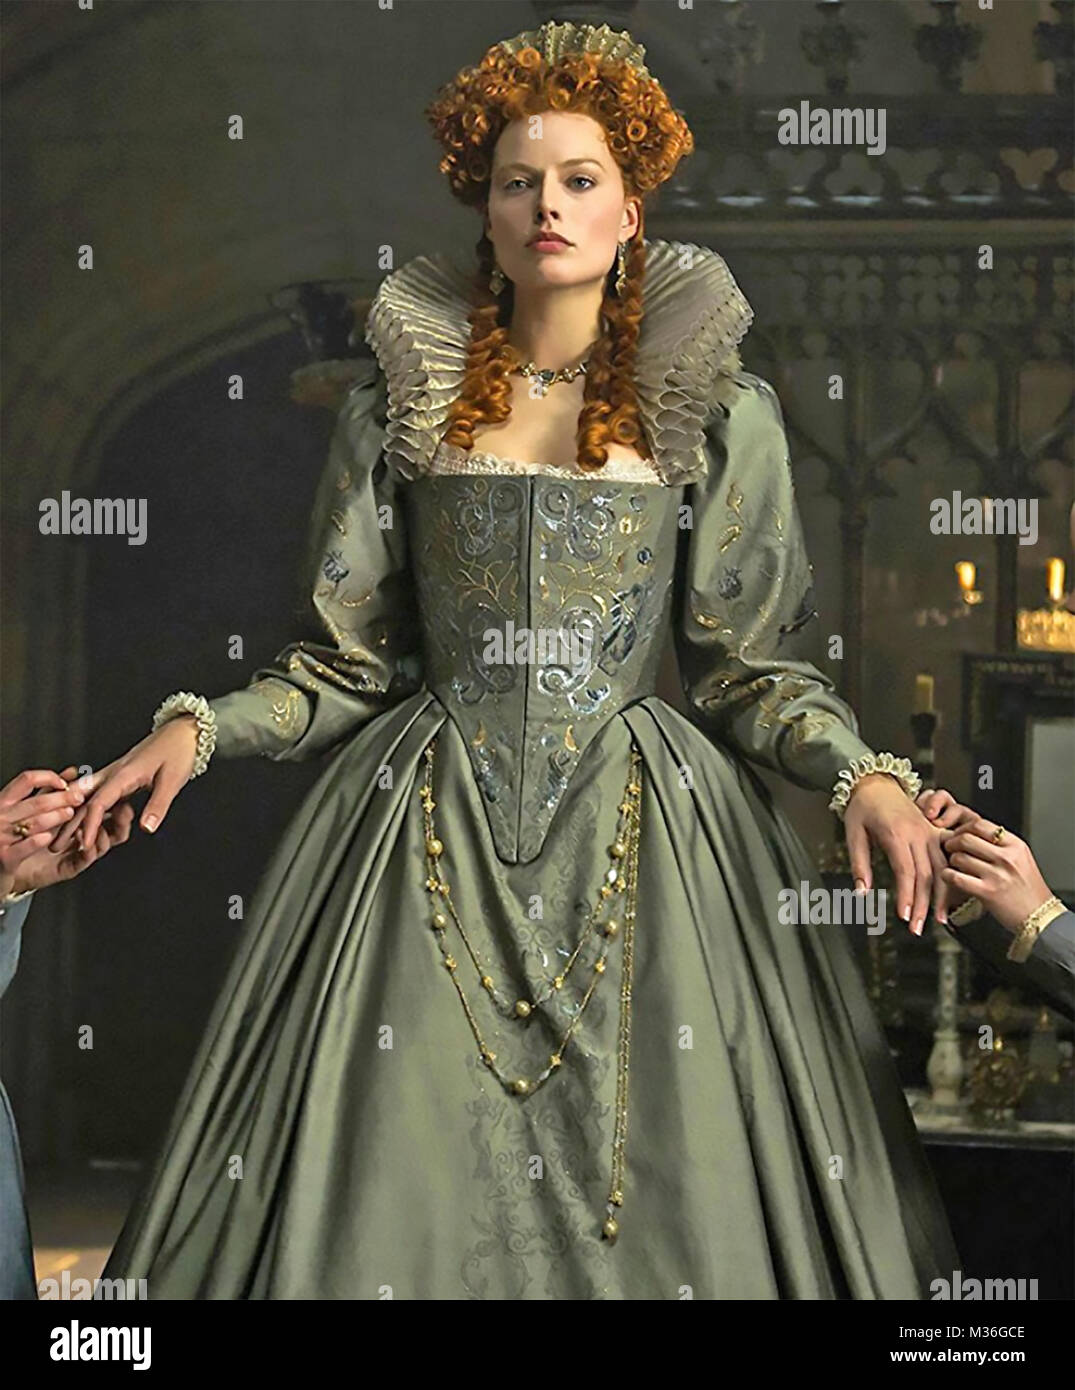 mary queen of scots 2018 focus features film with margot robbie as